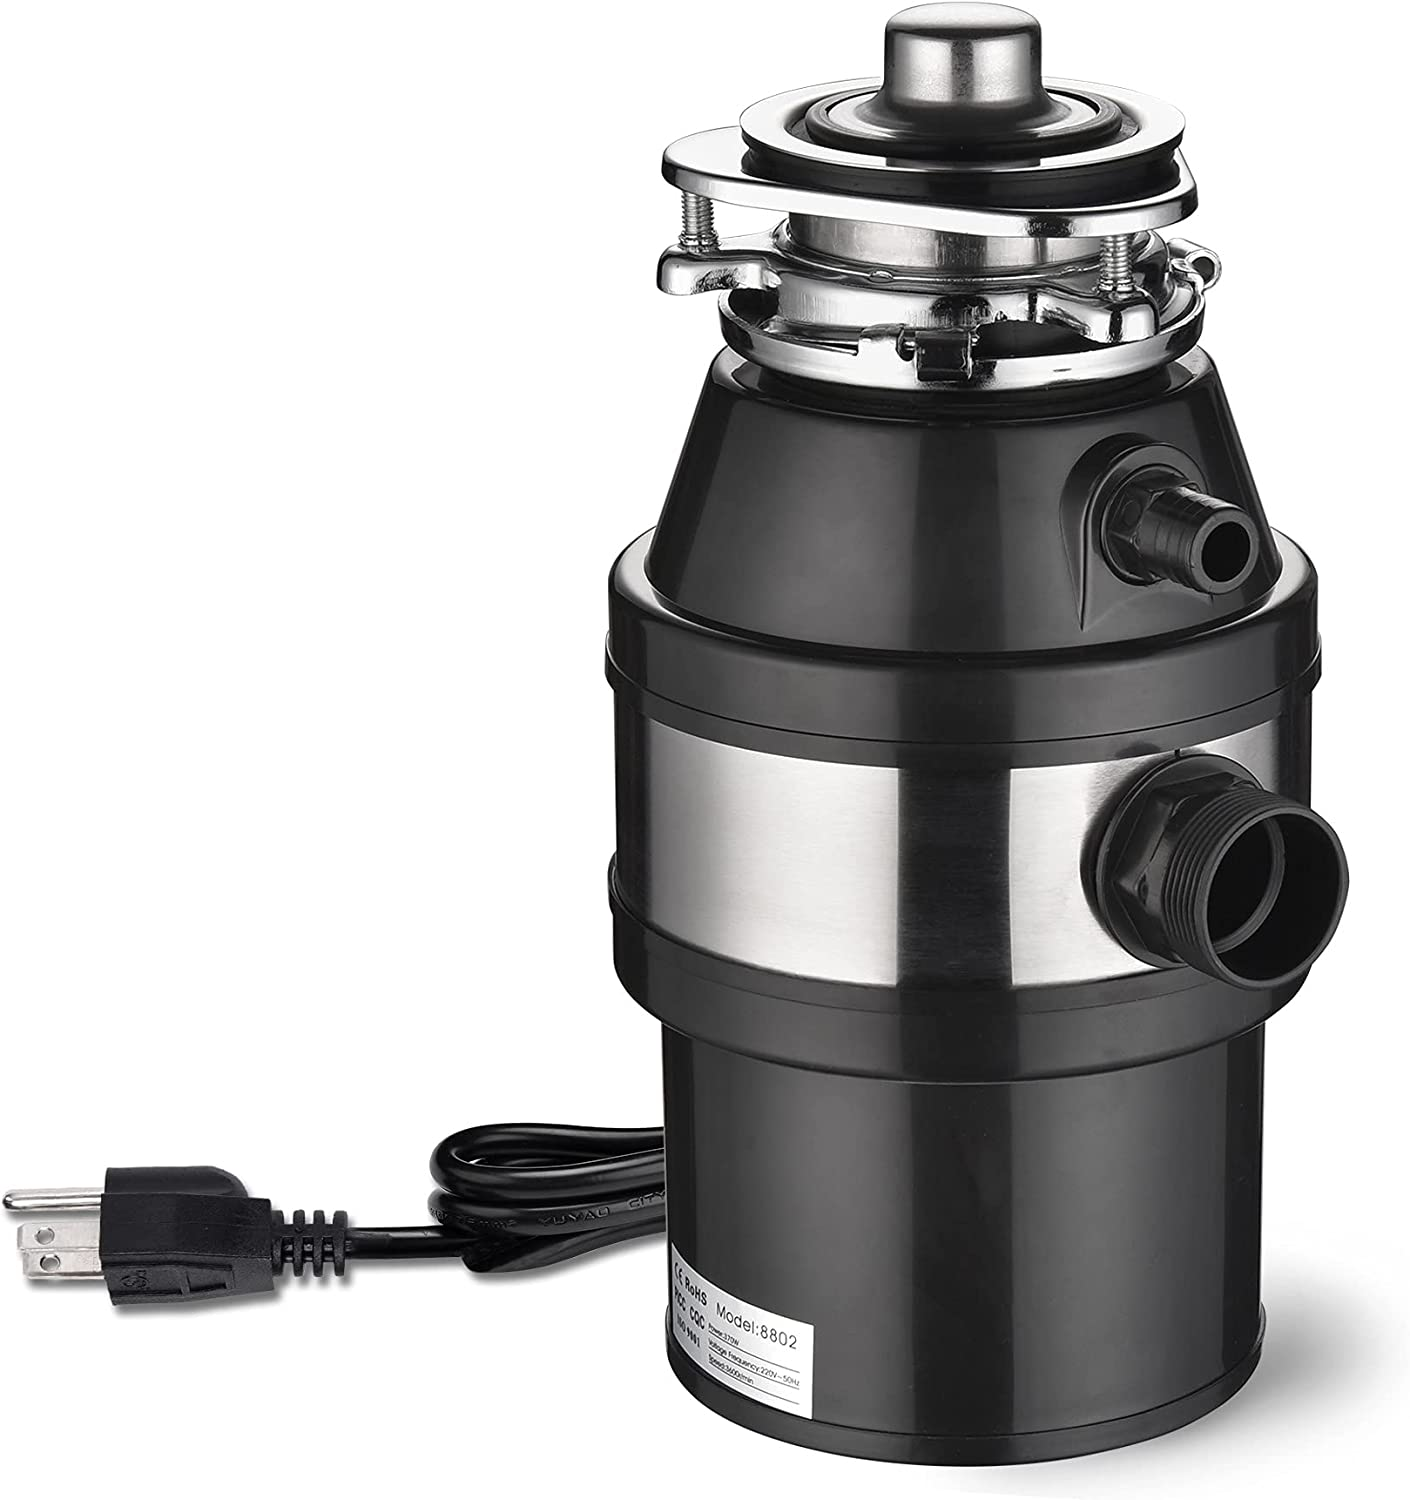 WeChef Garbage Disposal with Power Waste High order for Kitchen Ranking TOP3 Cord Operat